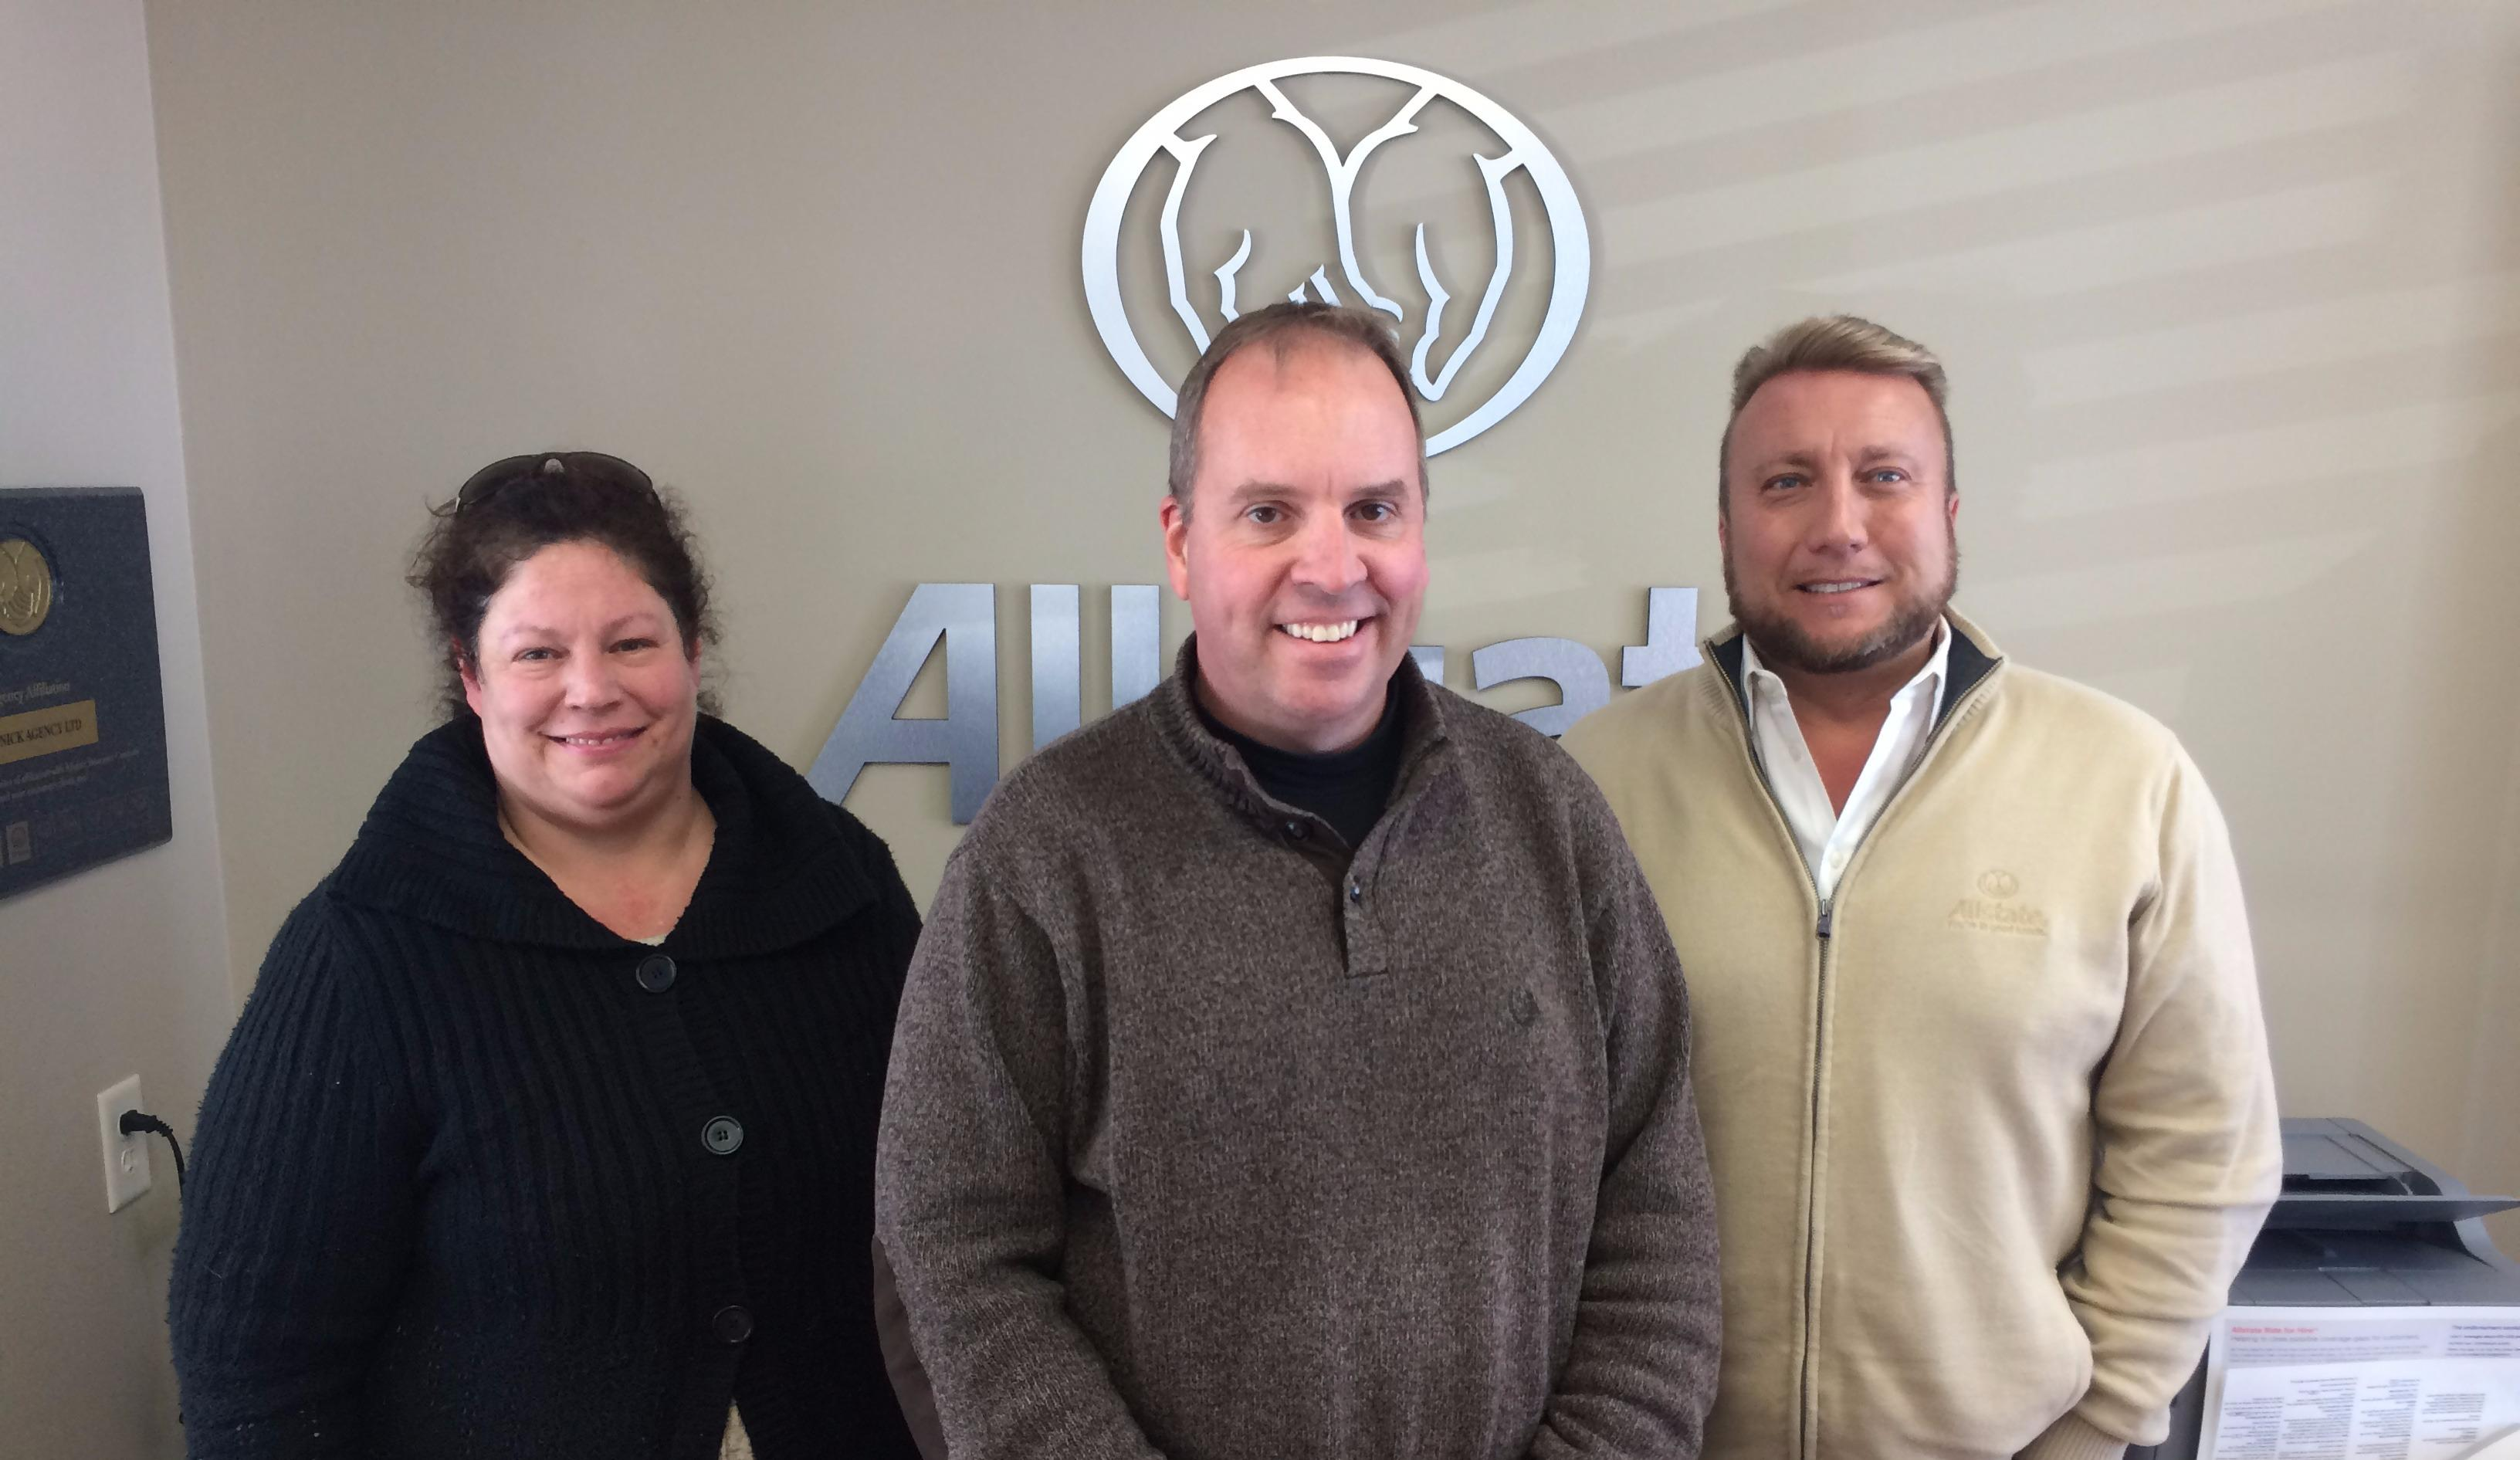 Gary Bonick: Allstate Insurance